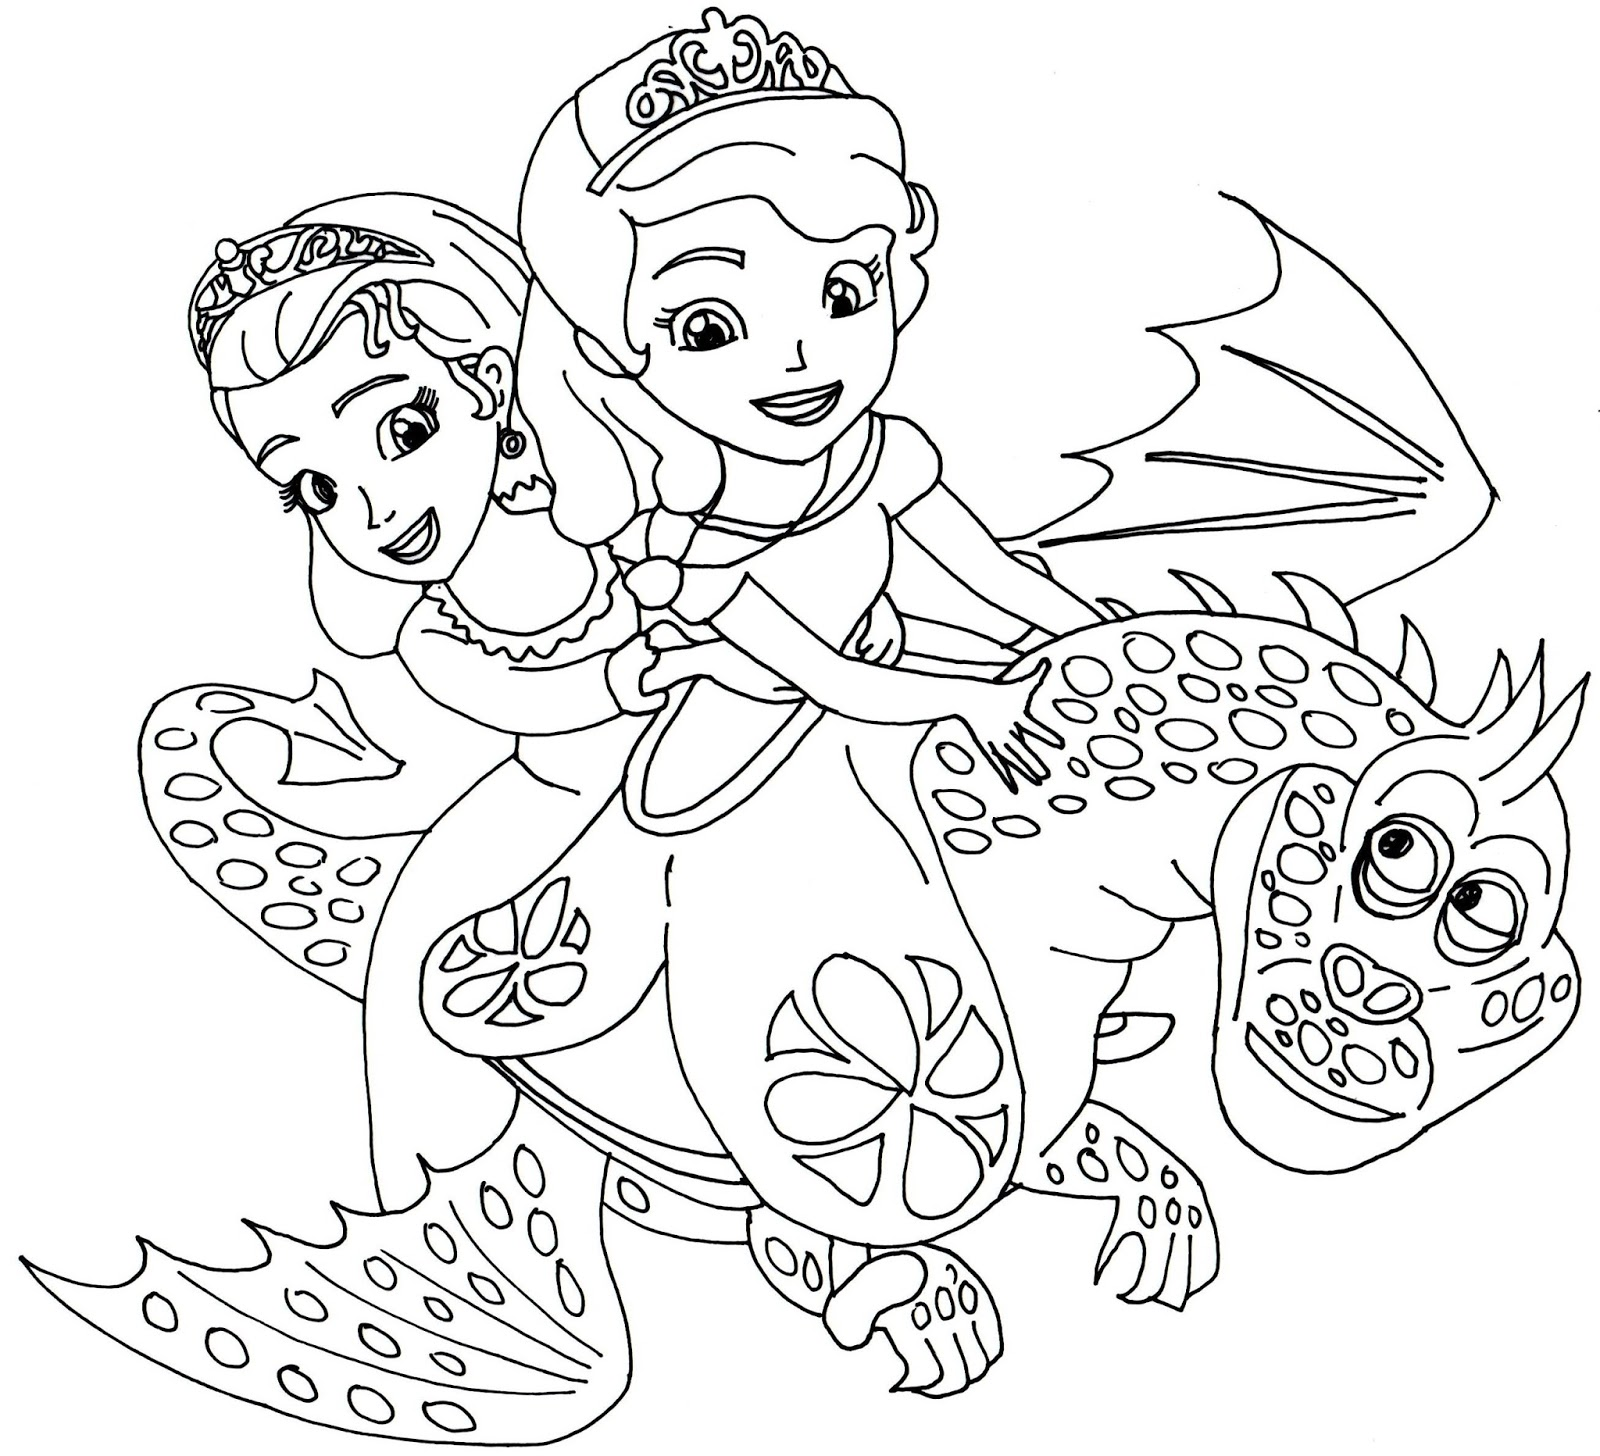 Sofia The First Coloring Pages: December 2015